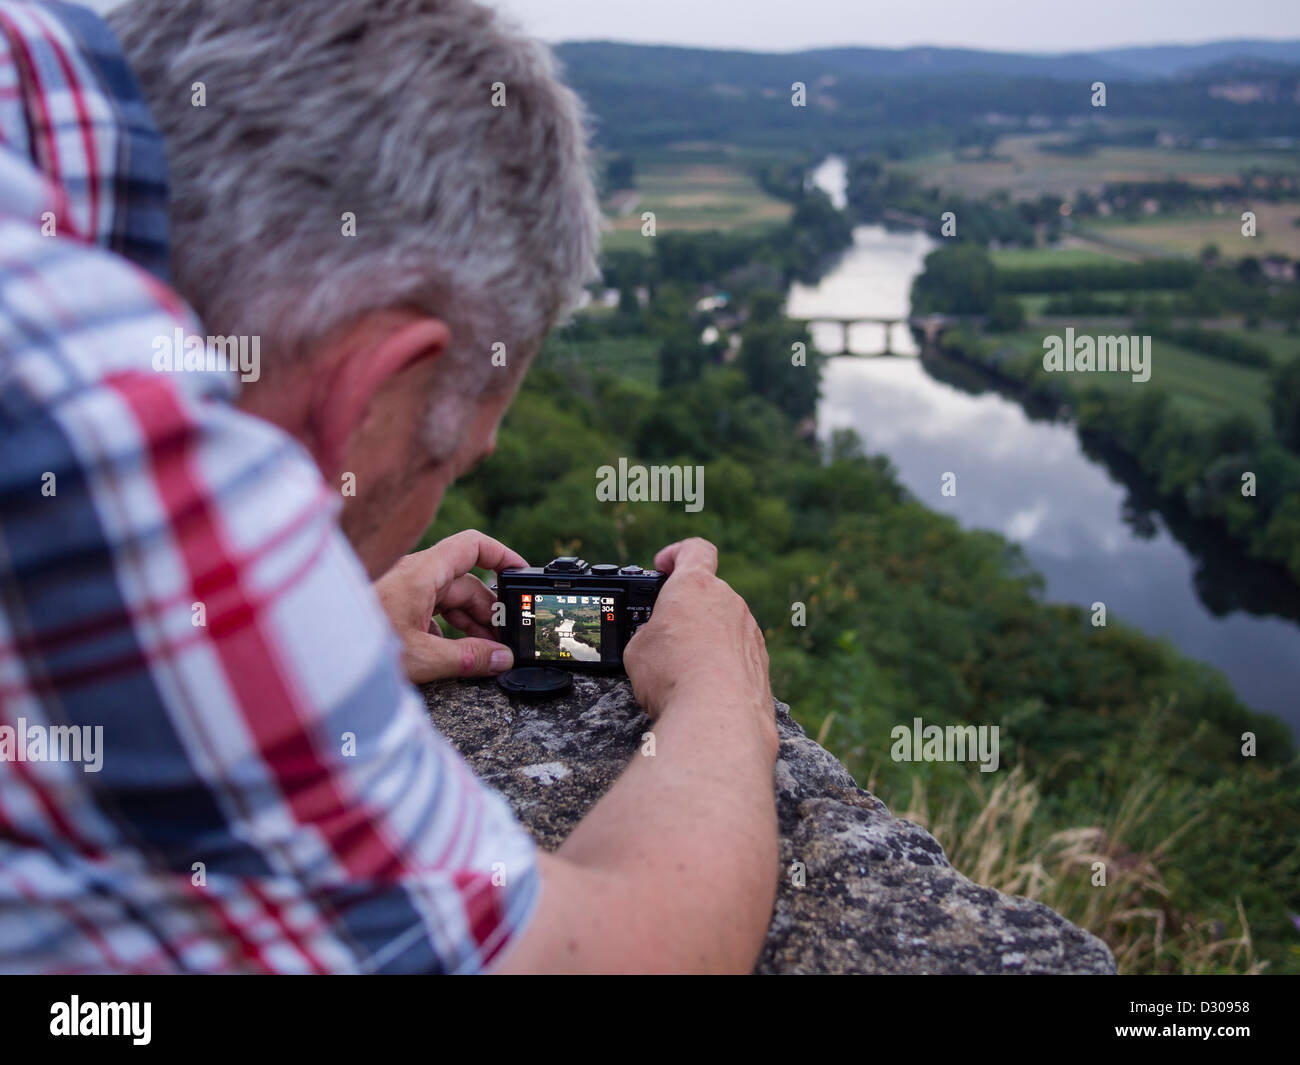 A tourist takes a photo of the river Dordogne flowing through the Périgord landscape in Southern France. - Stock Image